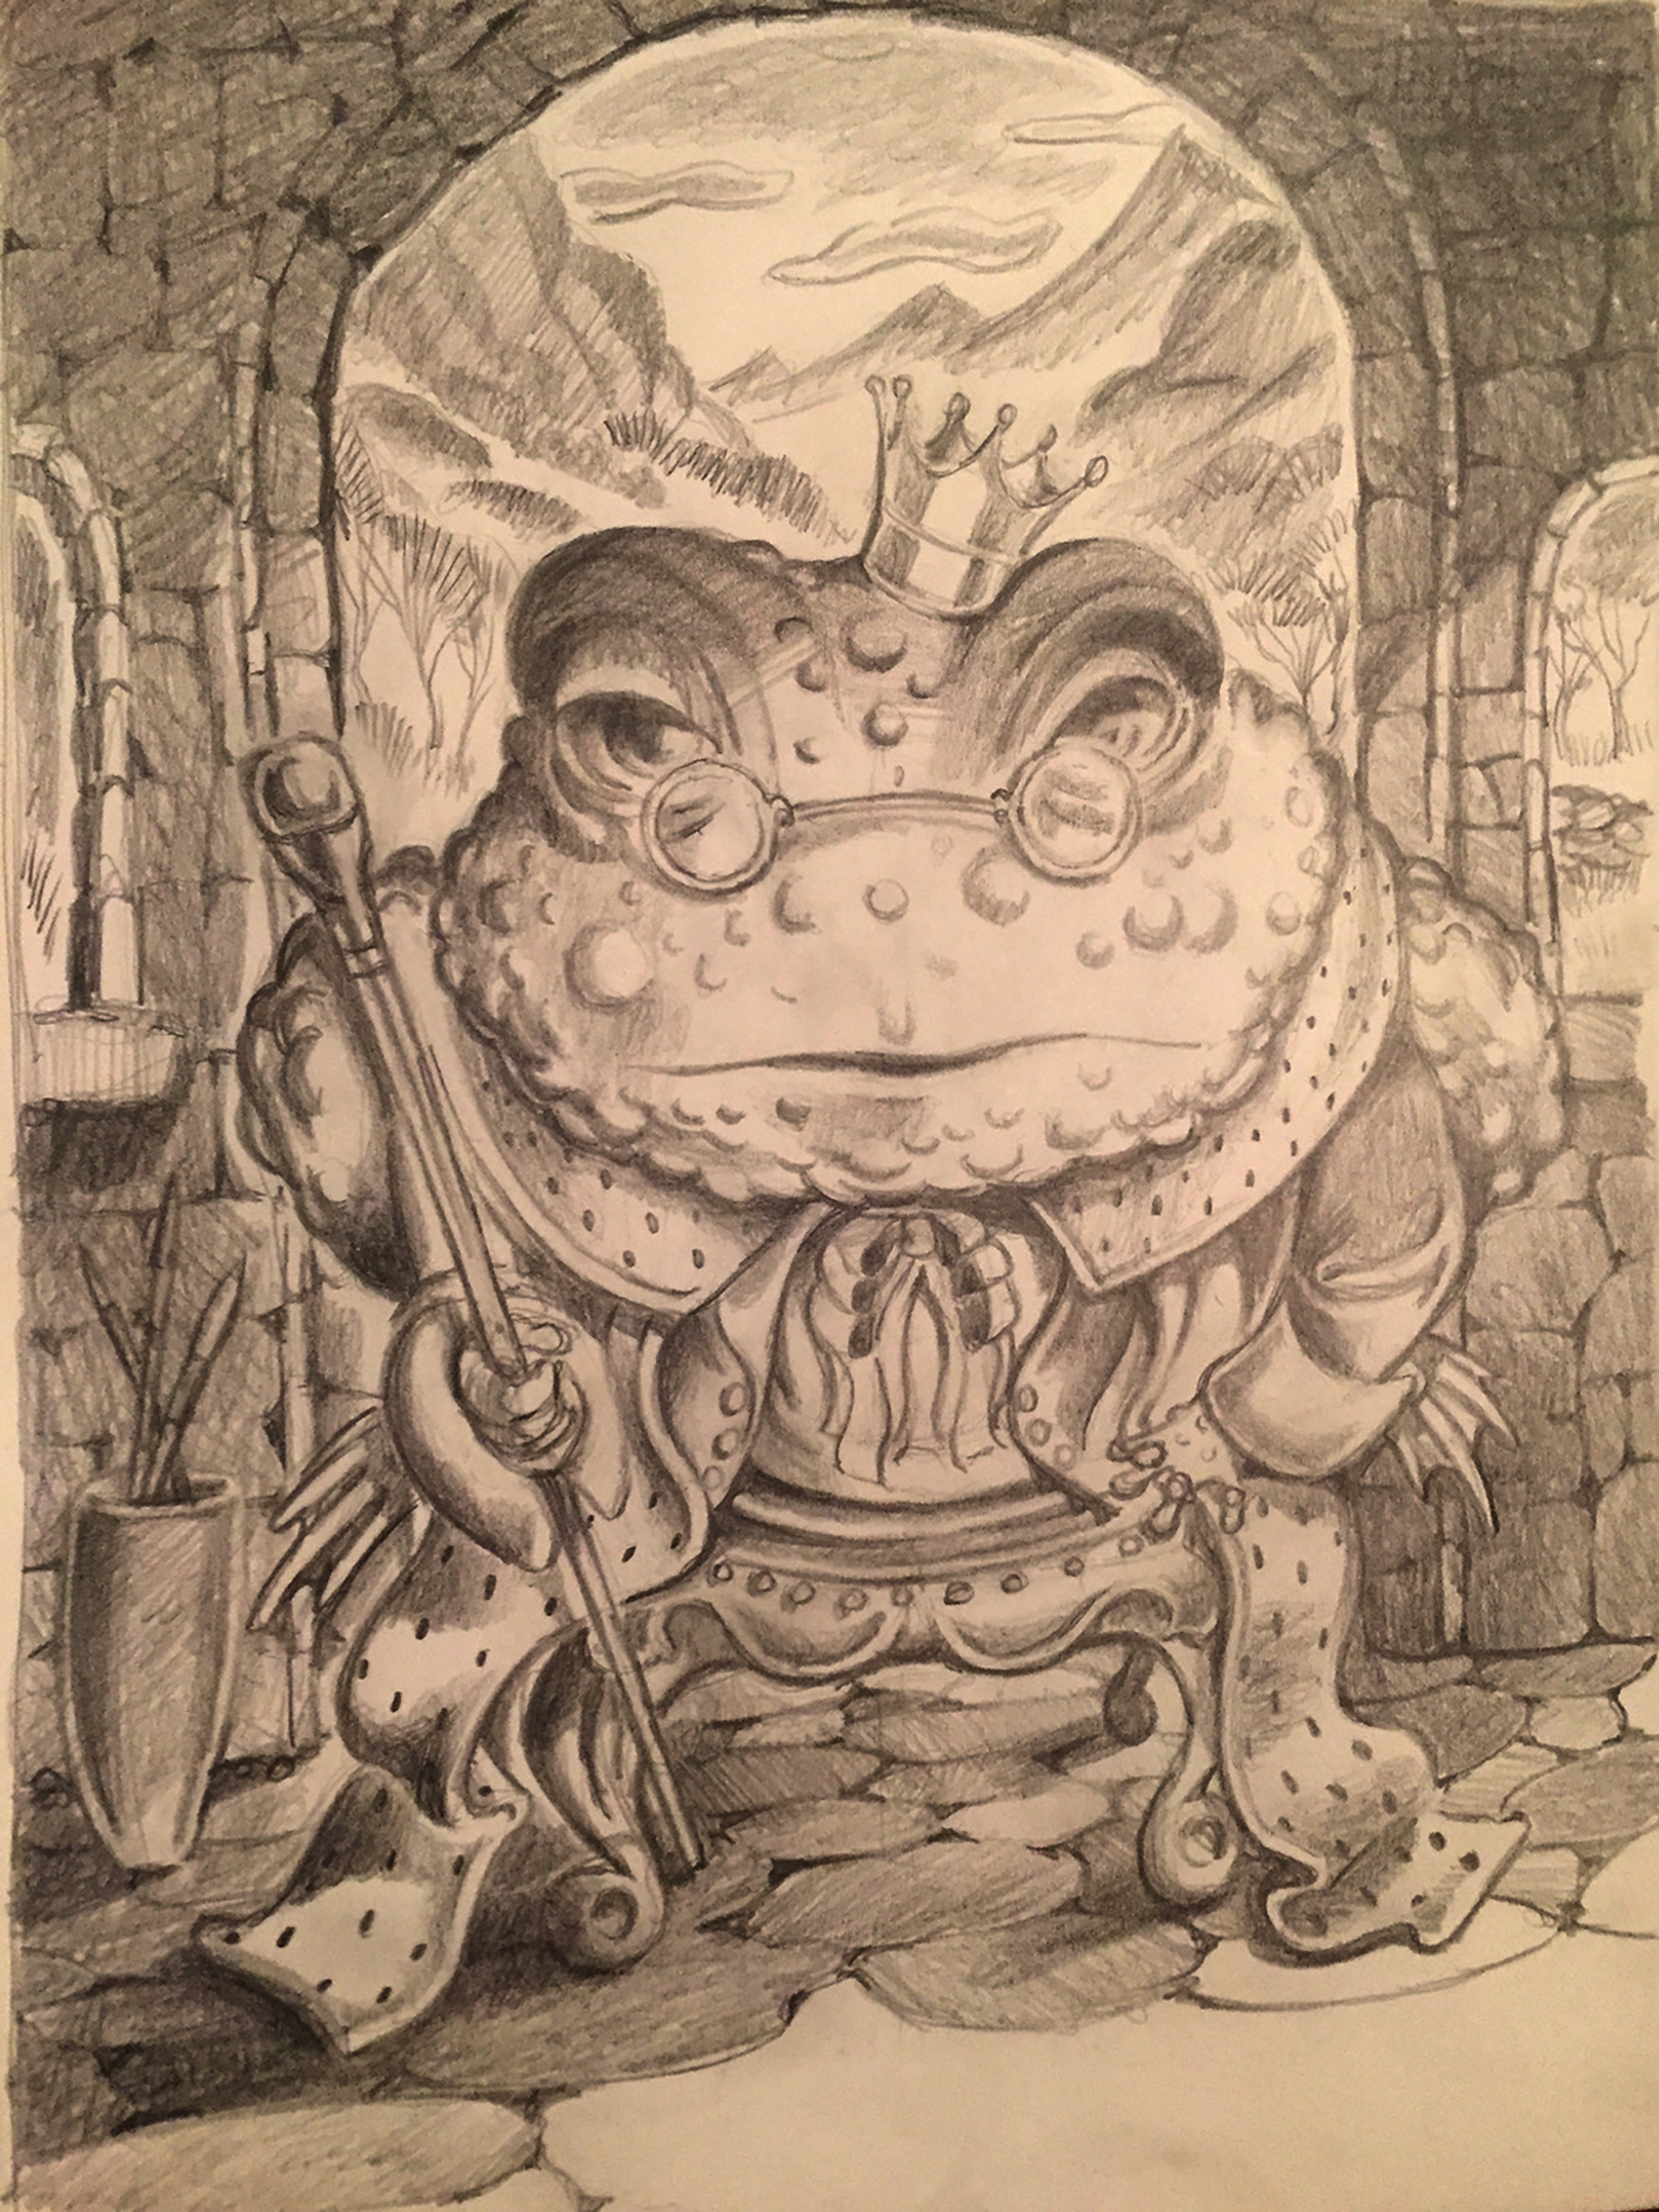 The White Toad King